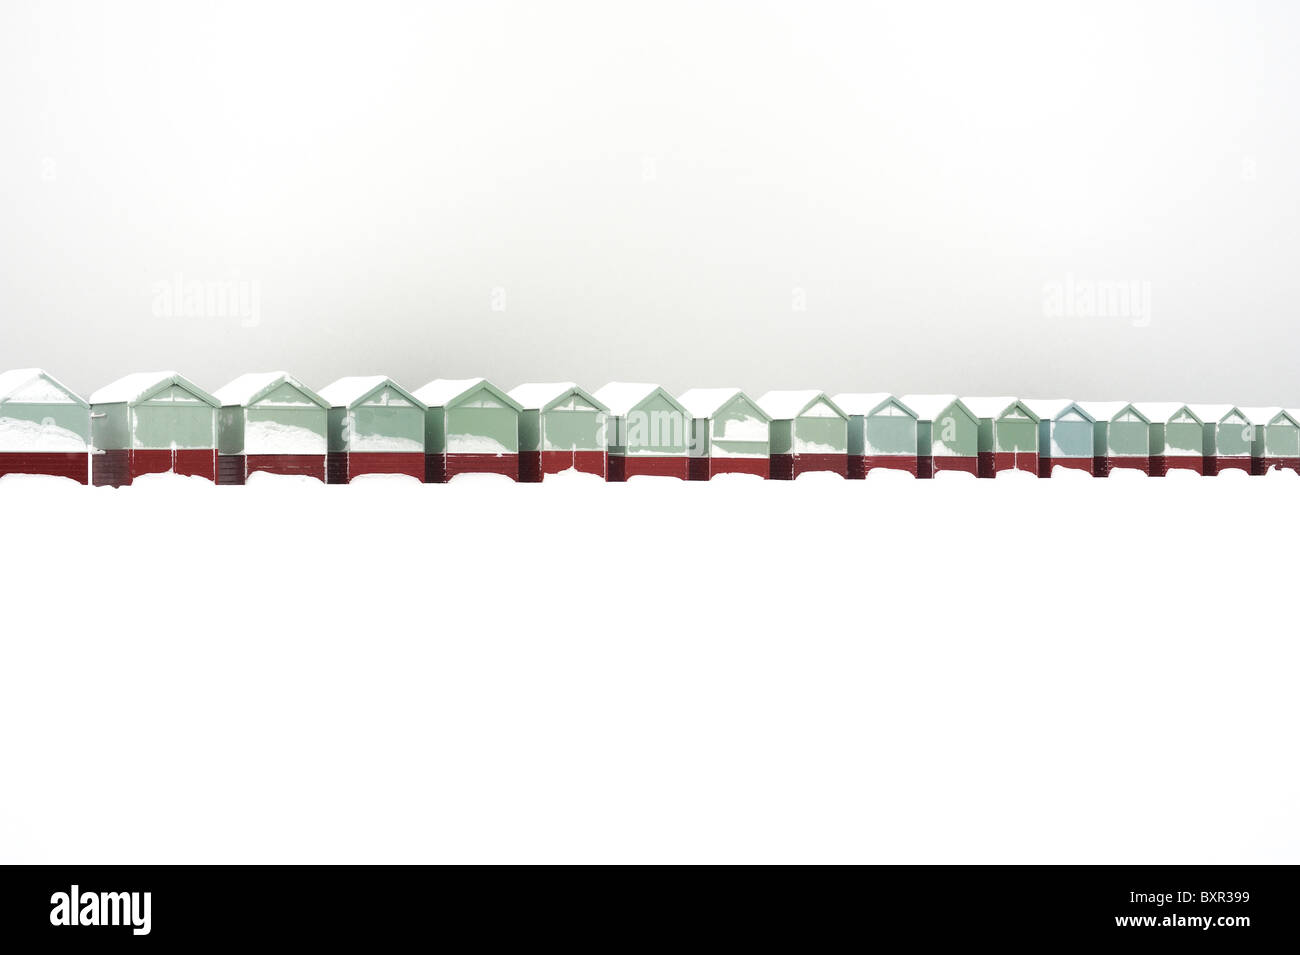 A row of beach huts covered in snow - Stock Image